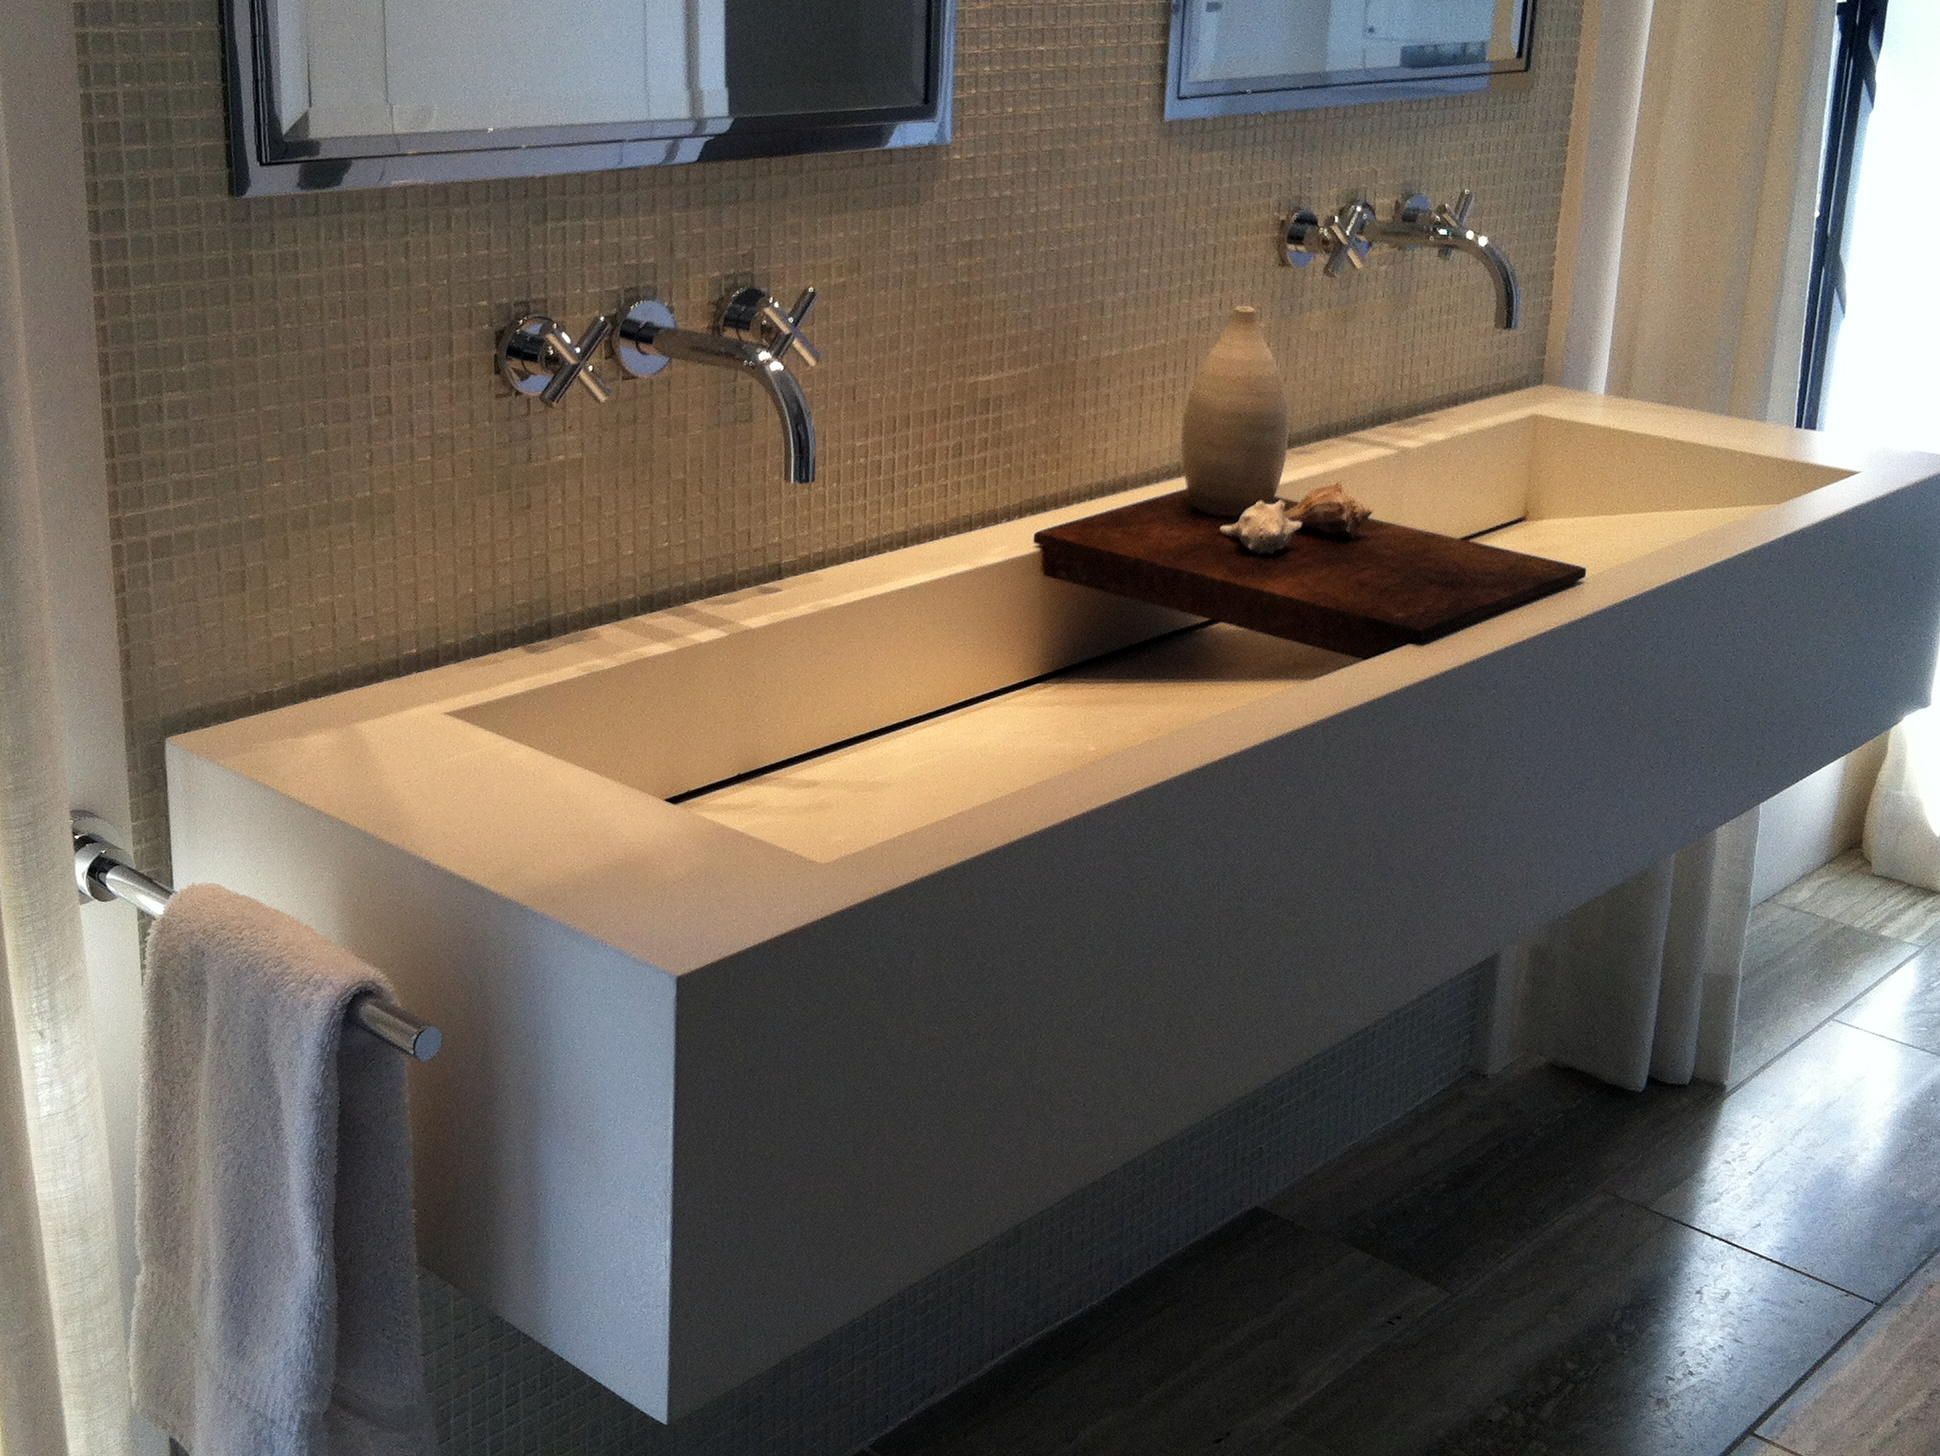 White Trough Sink and Vanity | Concrete Counters: Versatile, Durable and Stylish | Bathroom sink design, Unique bathroom sinks, Large bathroom sink